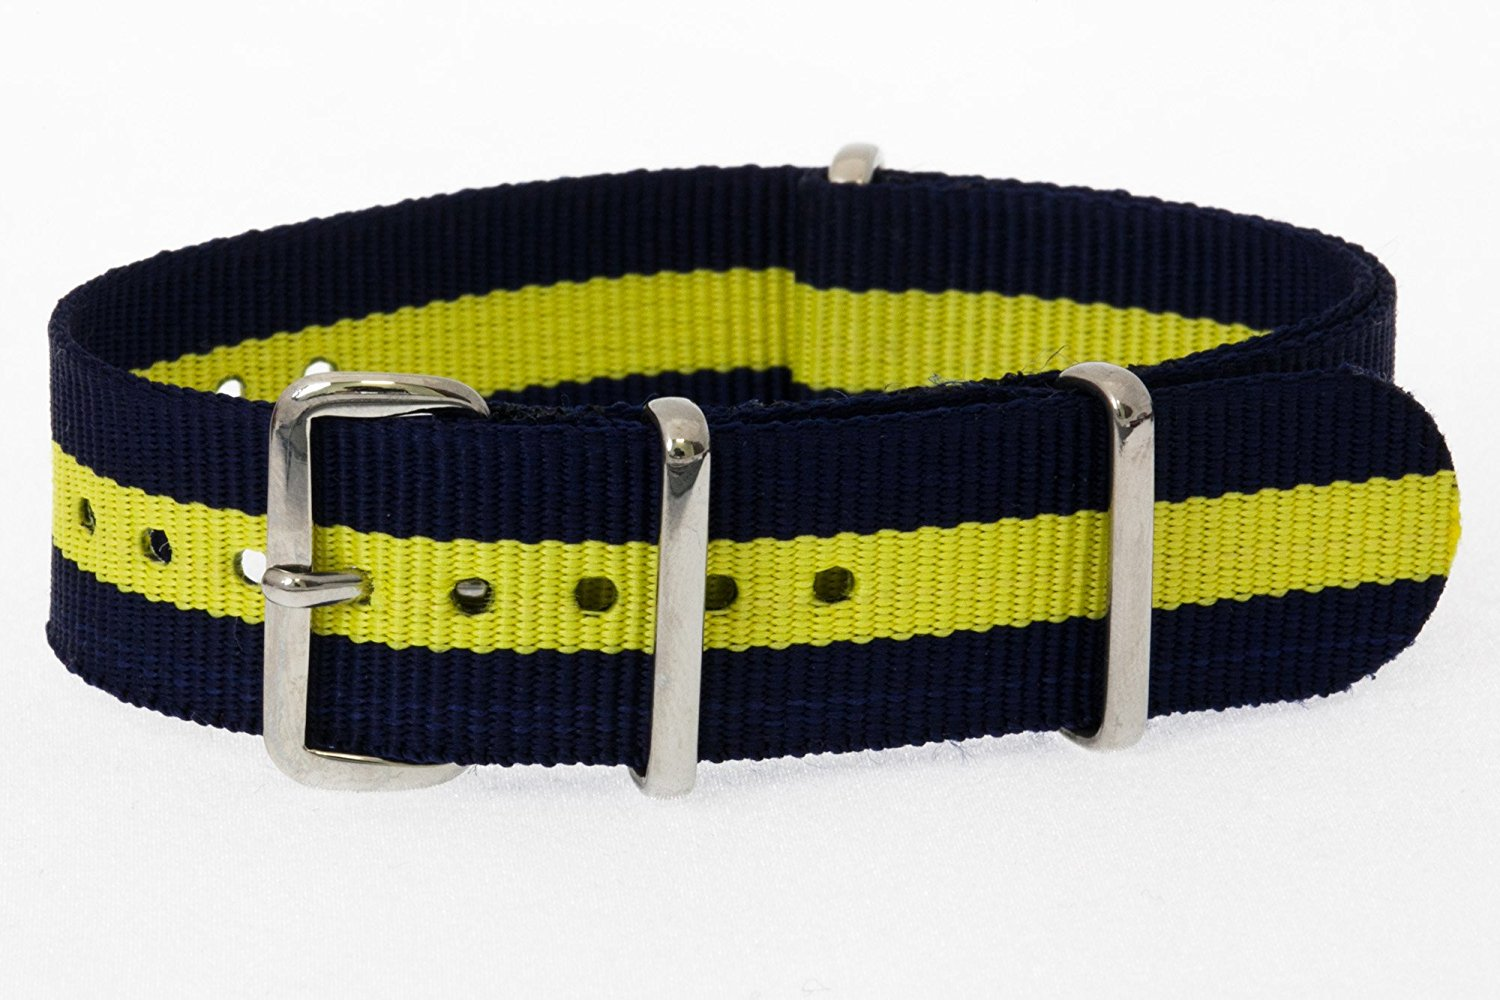 c6eed8a9743 20mm   Blue Yellow   James Bond Nylon Nato Watch Band Military Strap G10